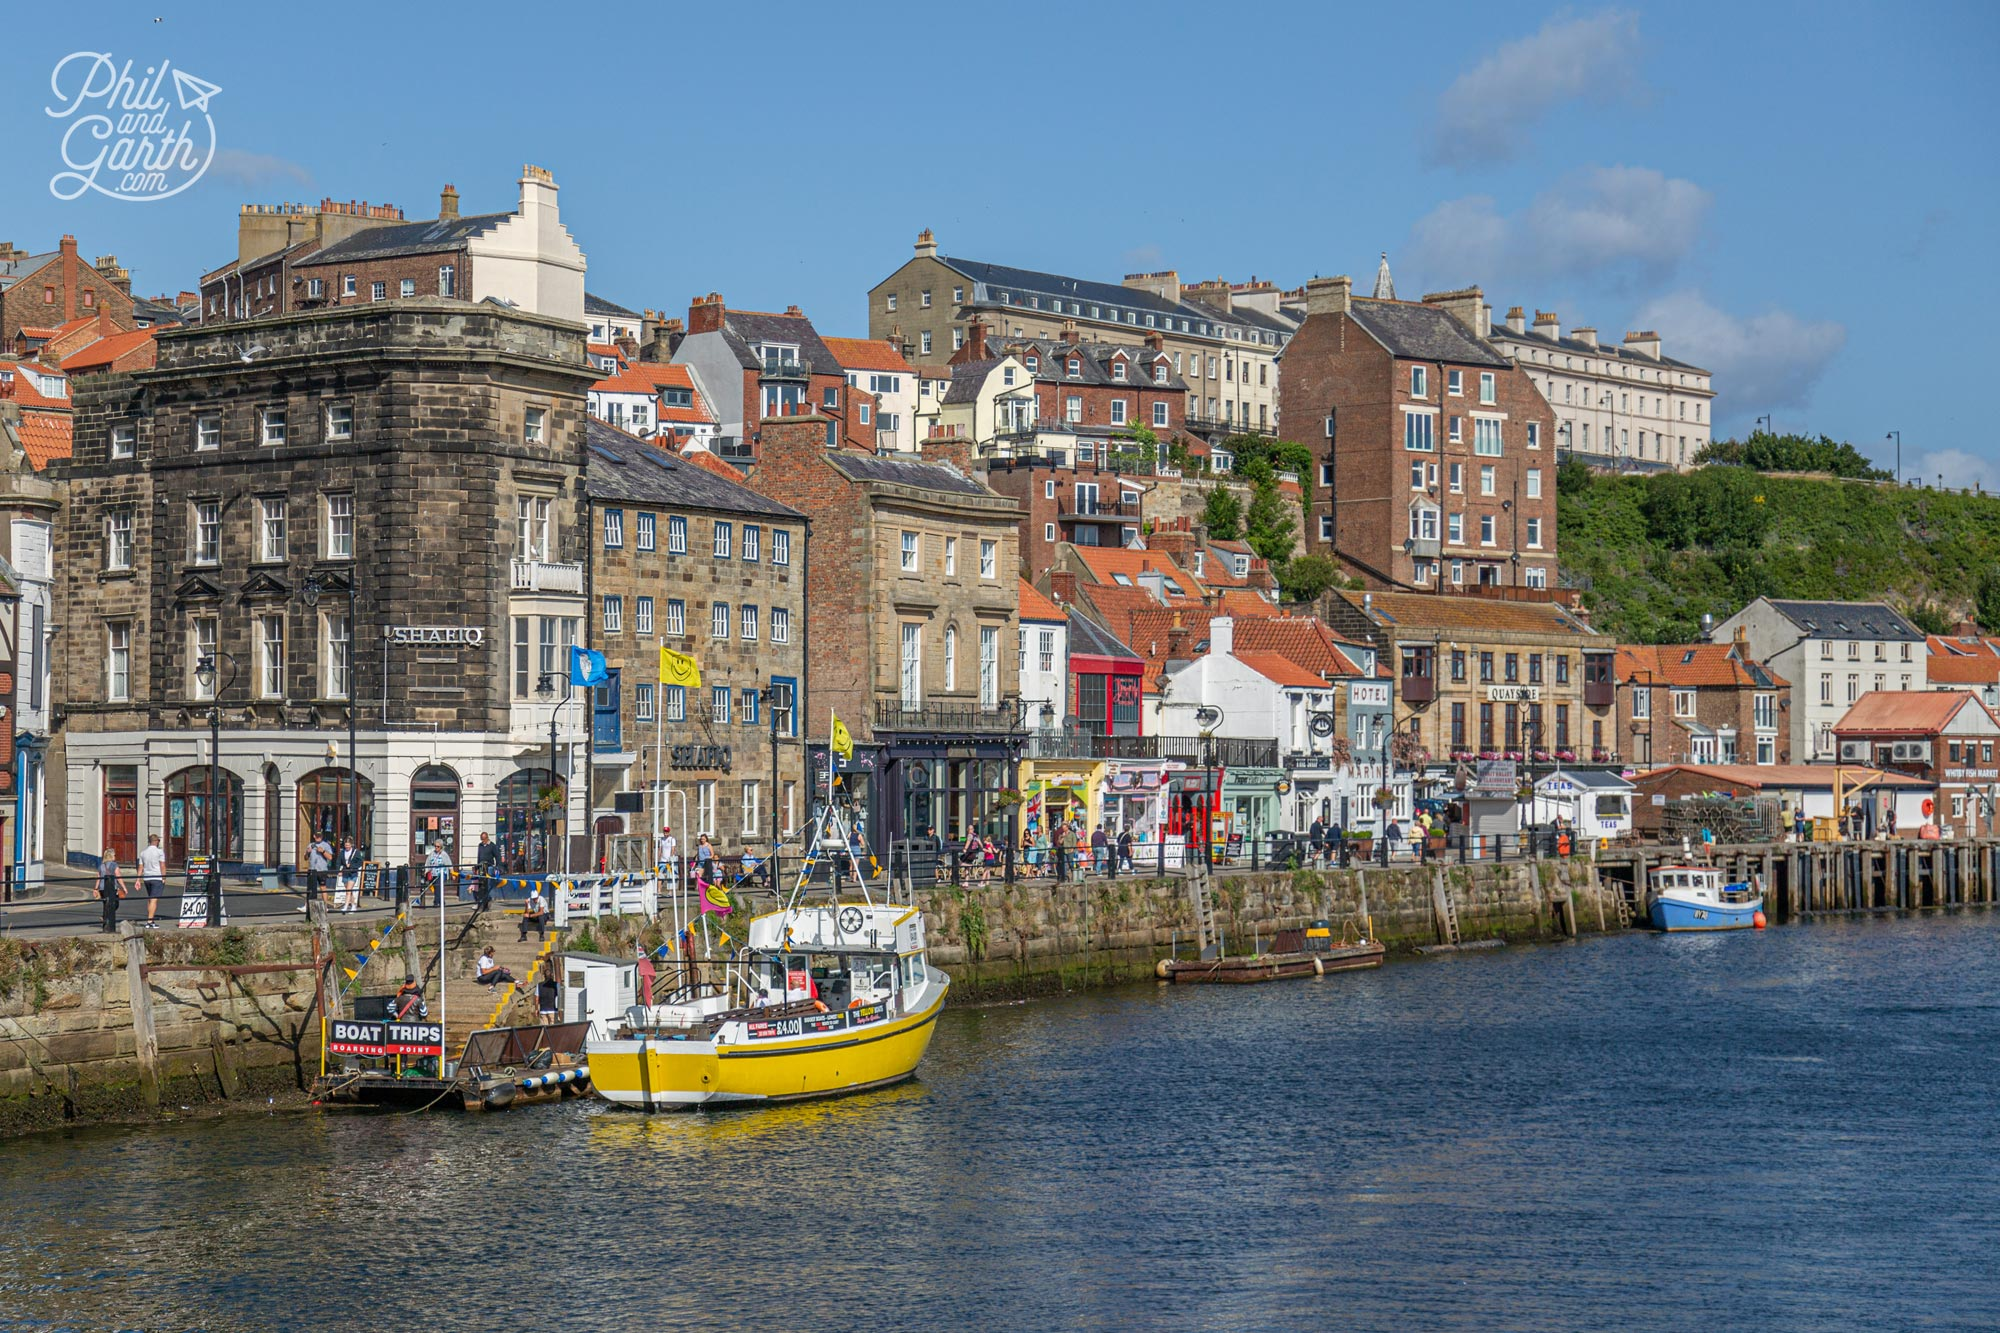 Whitby harbour - the best place for entertainment, bars and restaurants